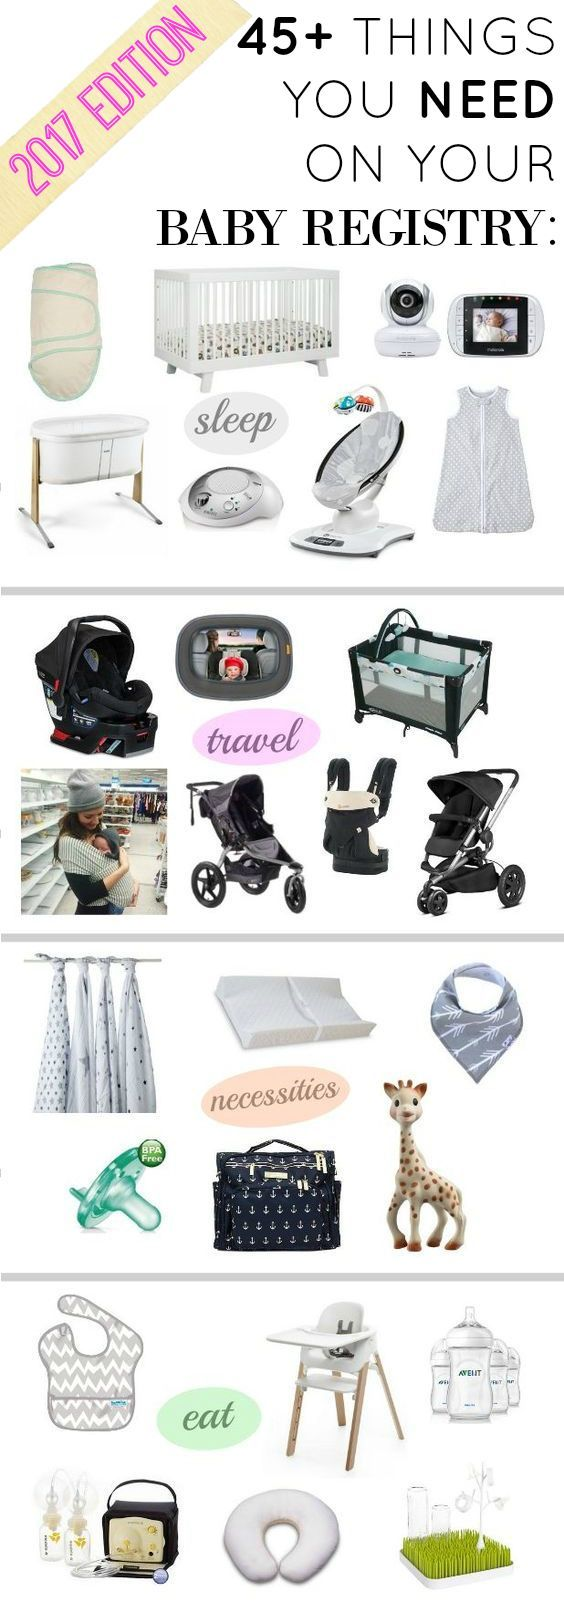 Over 45 baby registry must-haves! Updated for 2017! | Baby Registry Must Haves | What you need on your baby registry || Katie Did What